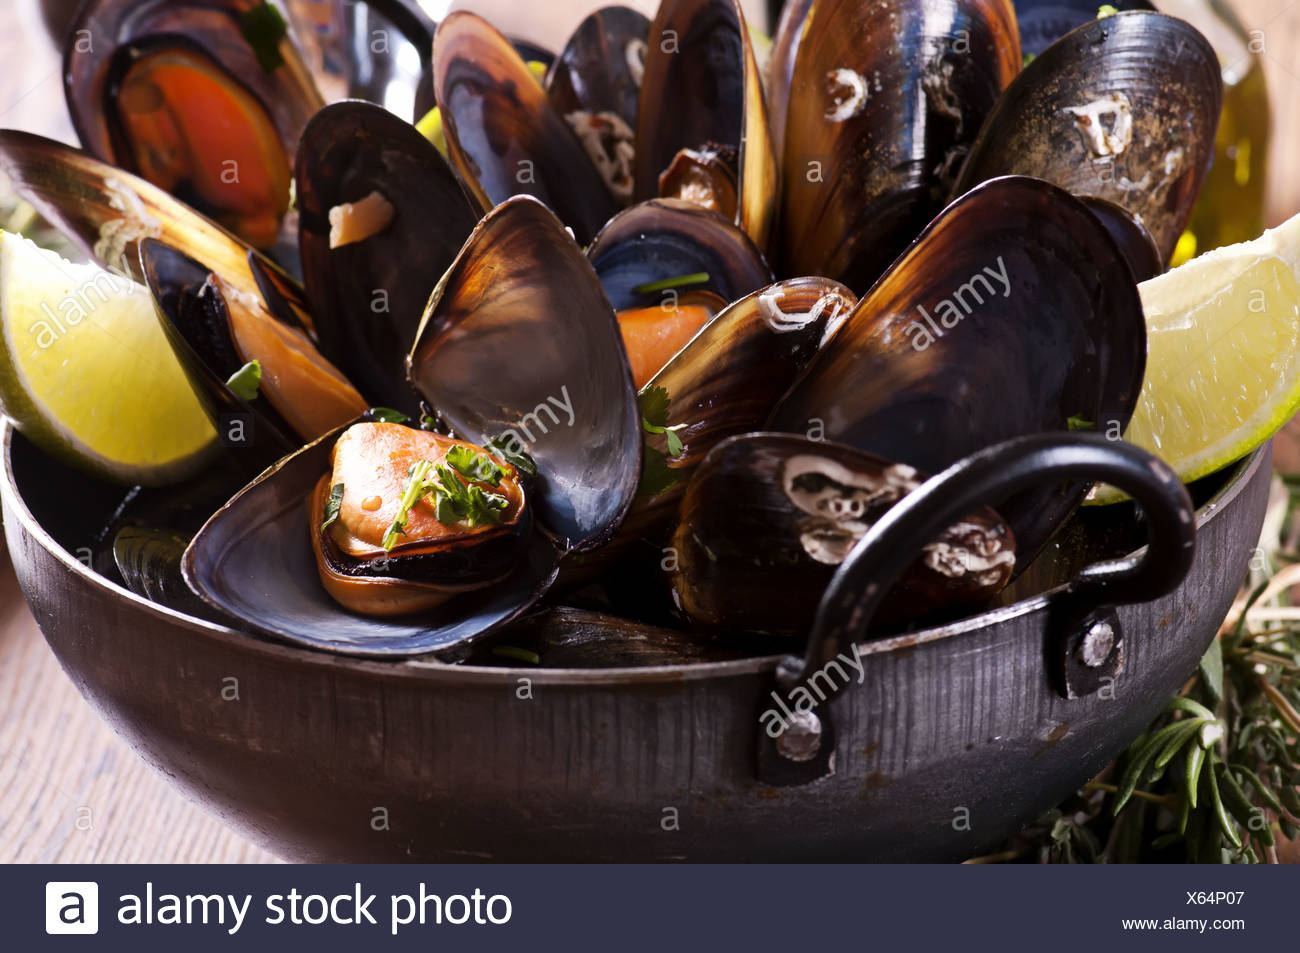 Mussels in White Wine as closeup in a Stewpot - Stock Image